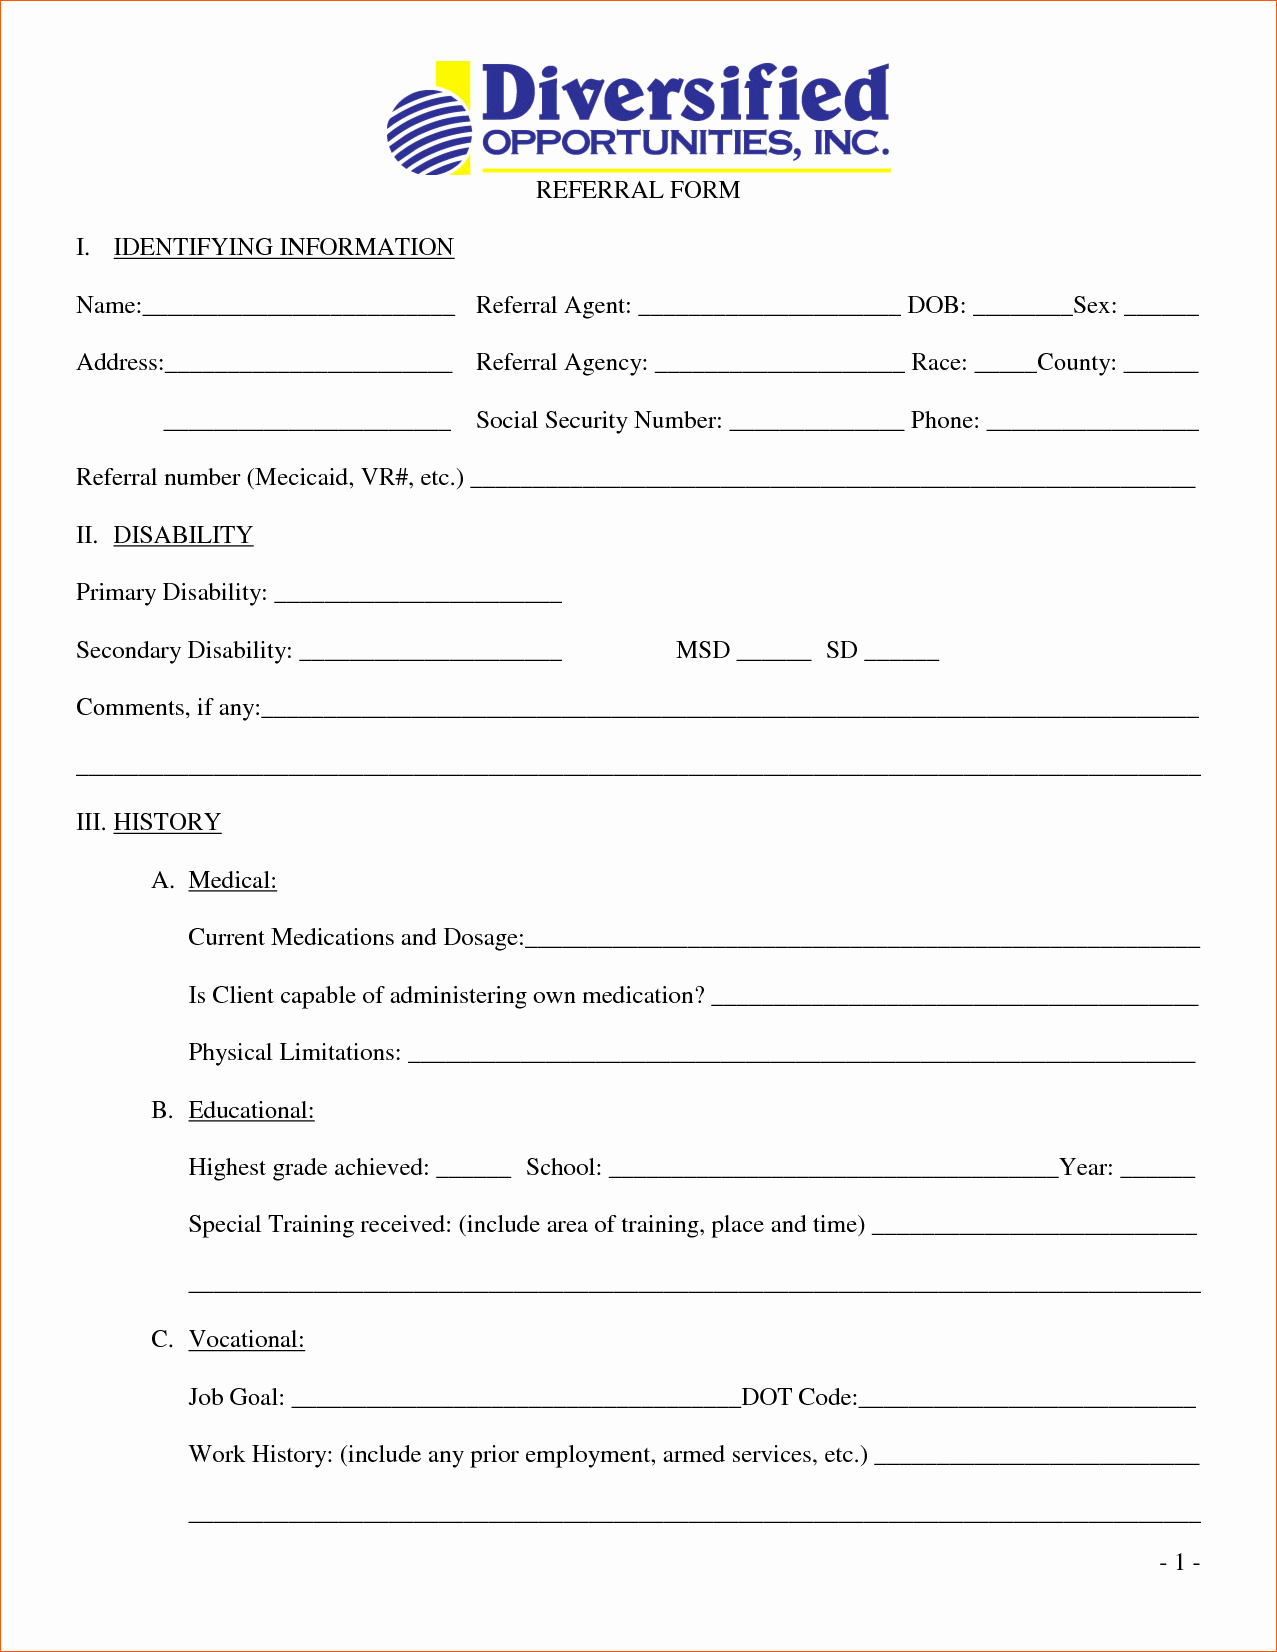 Doctor Referral form Template Luxury 7 Medical form Templates